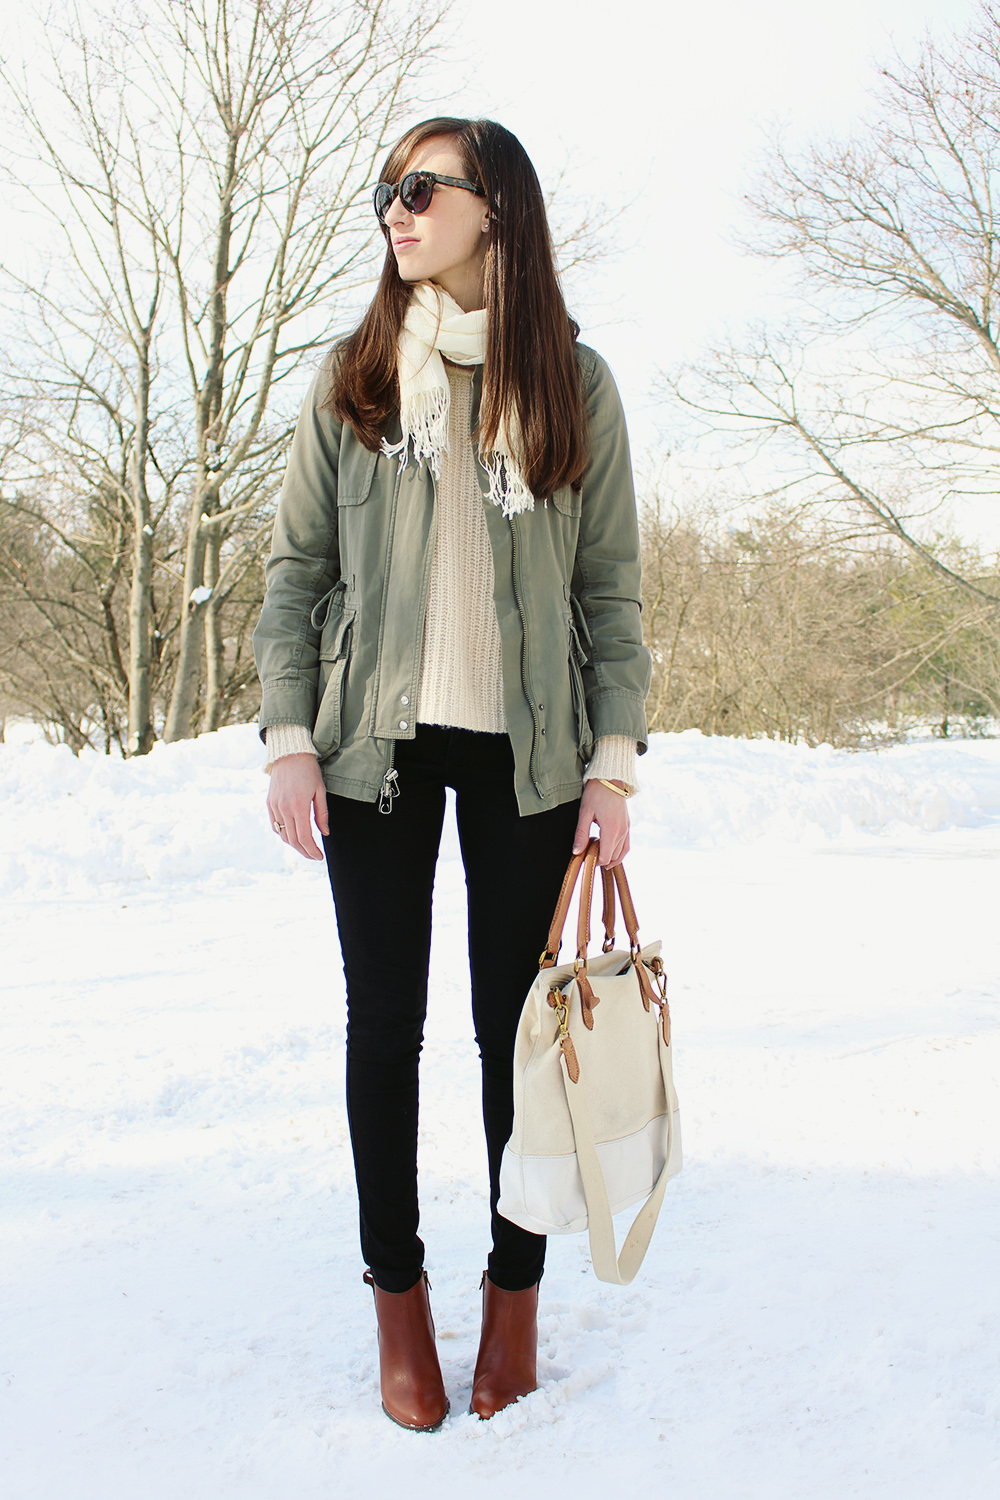 Style Bee Outfit - Utility Jacket and Neutrals